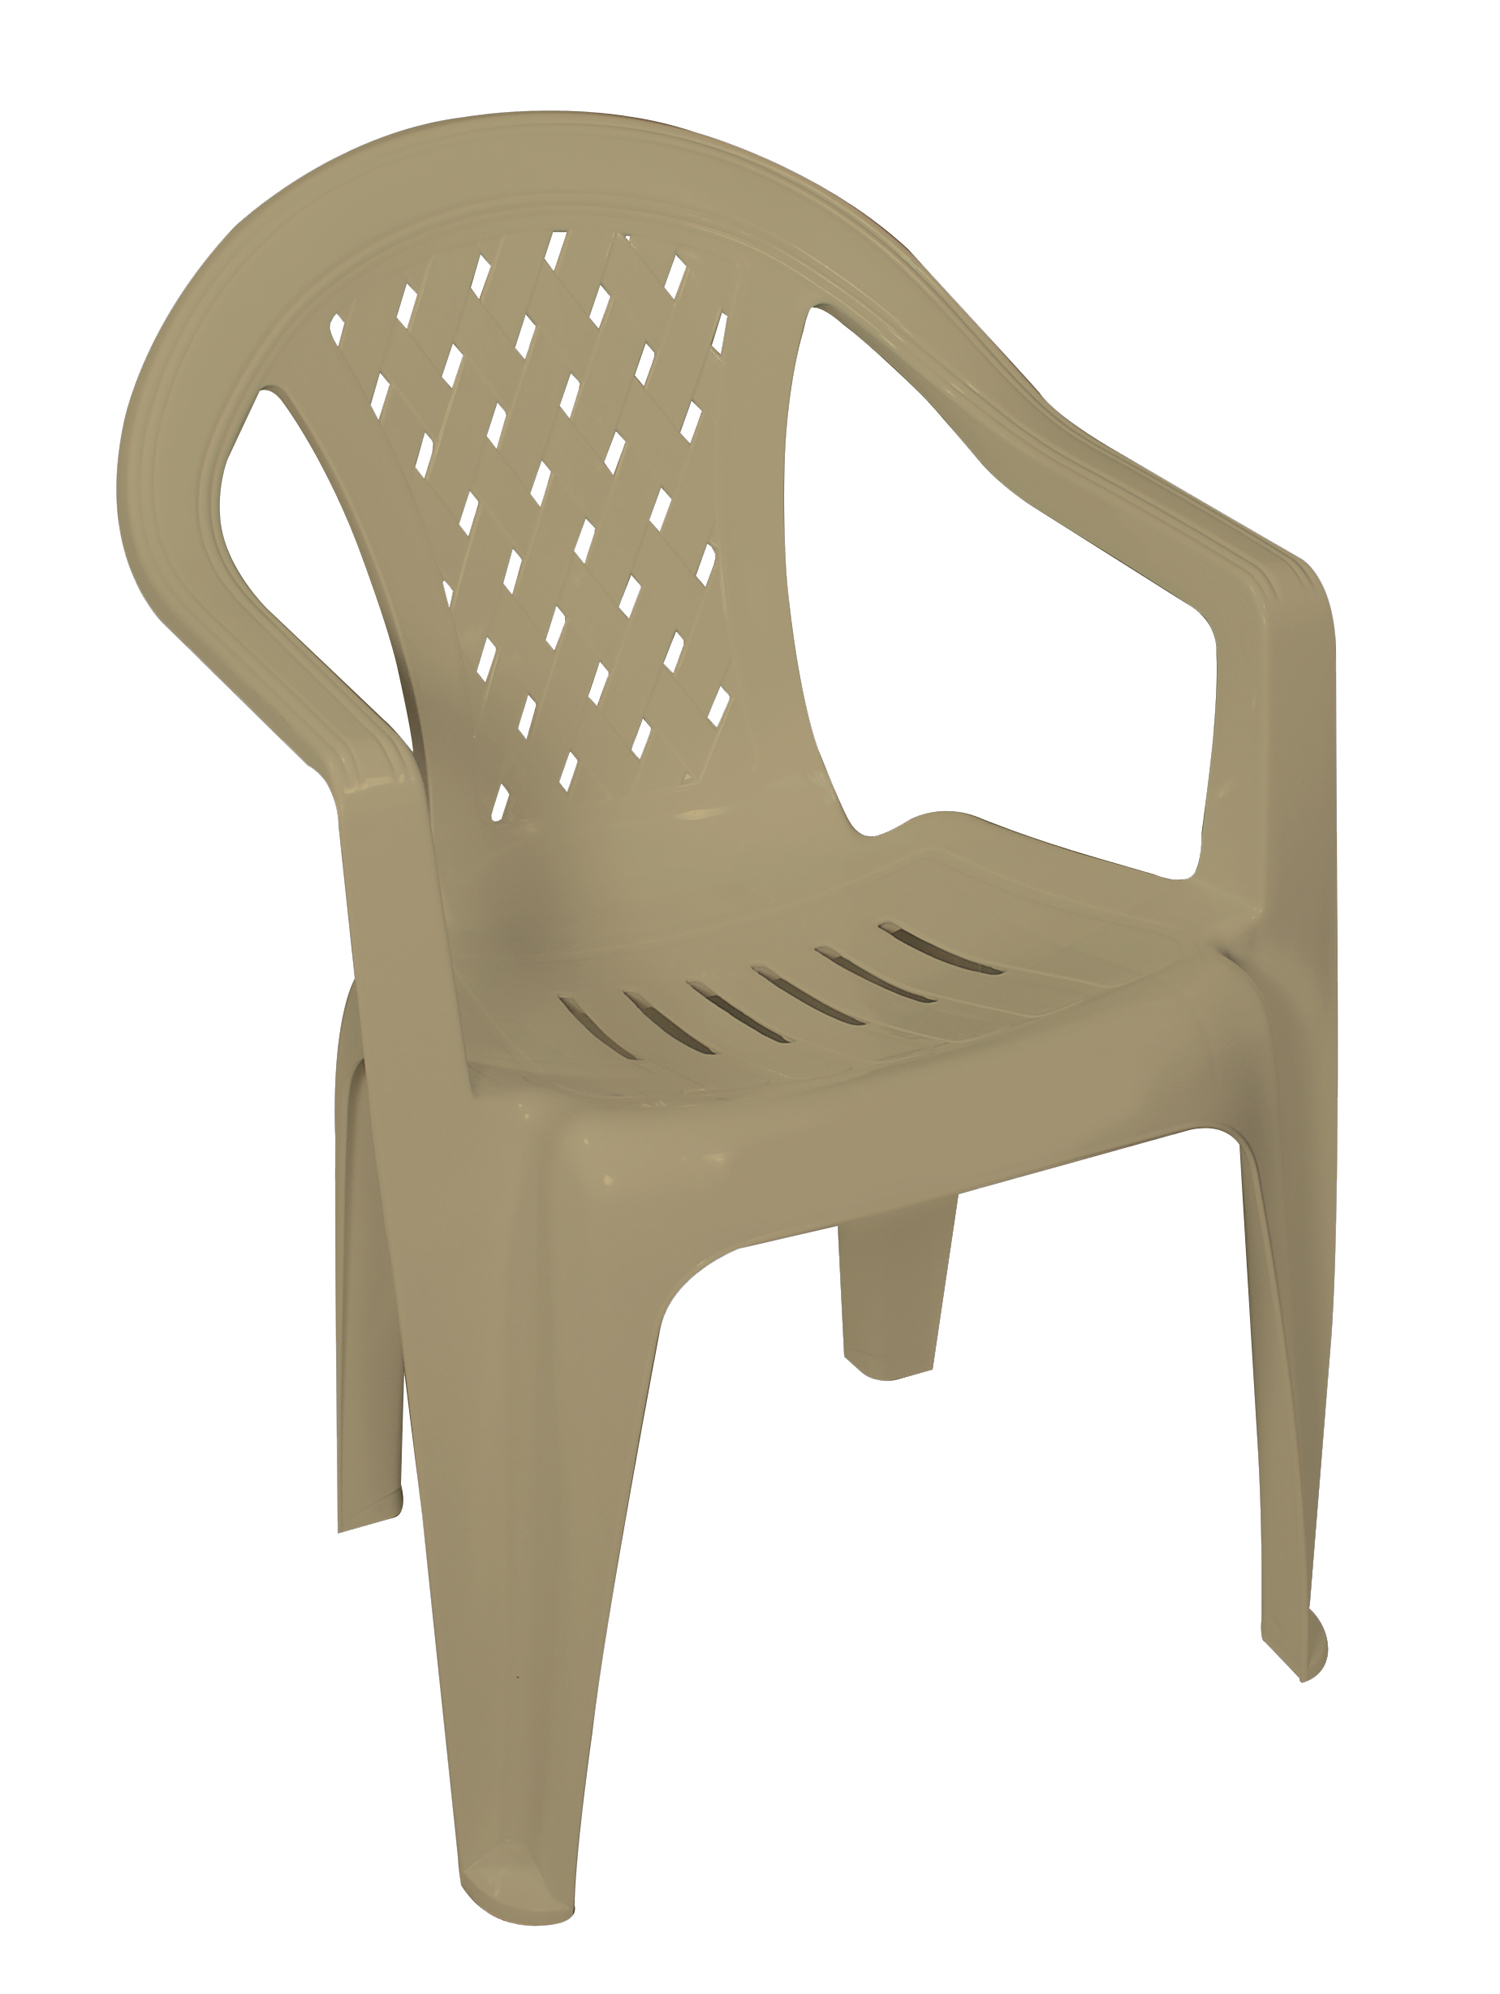 Kmart Lawn Chairs The Best Of Plastic Yard Chairs Pictures Struktura Struktura